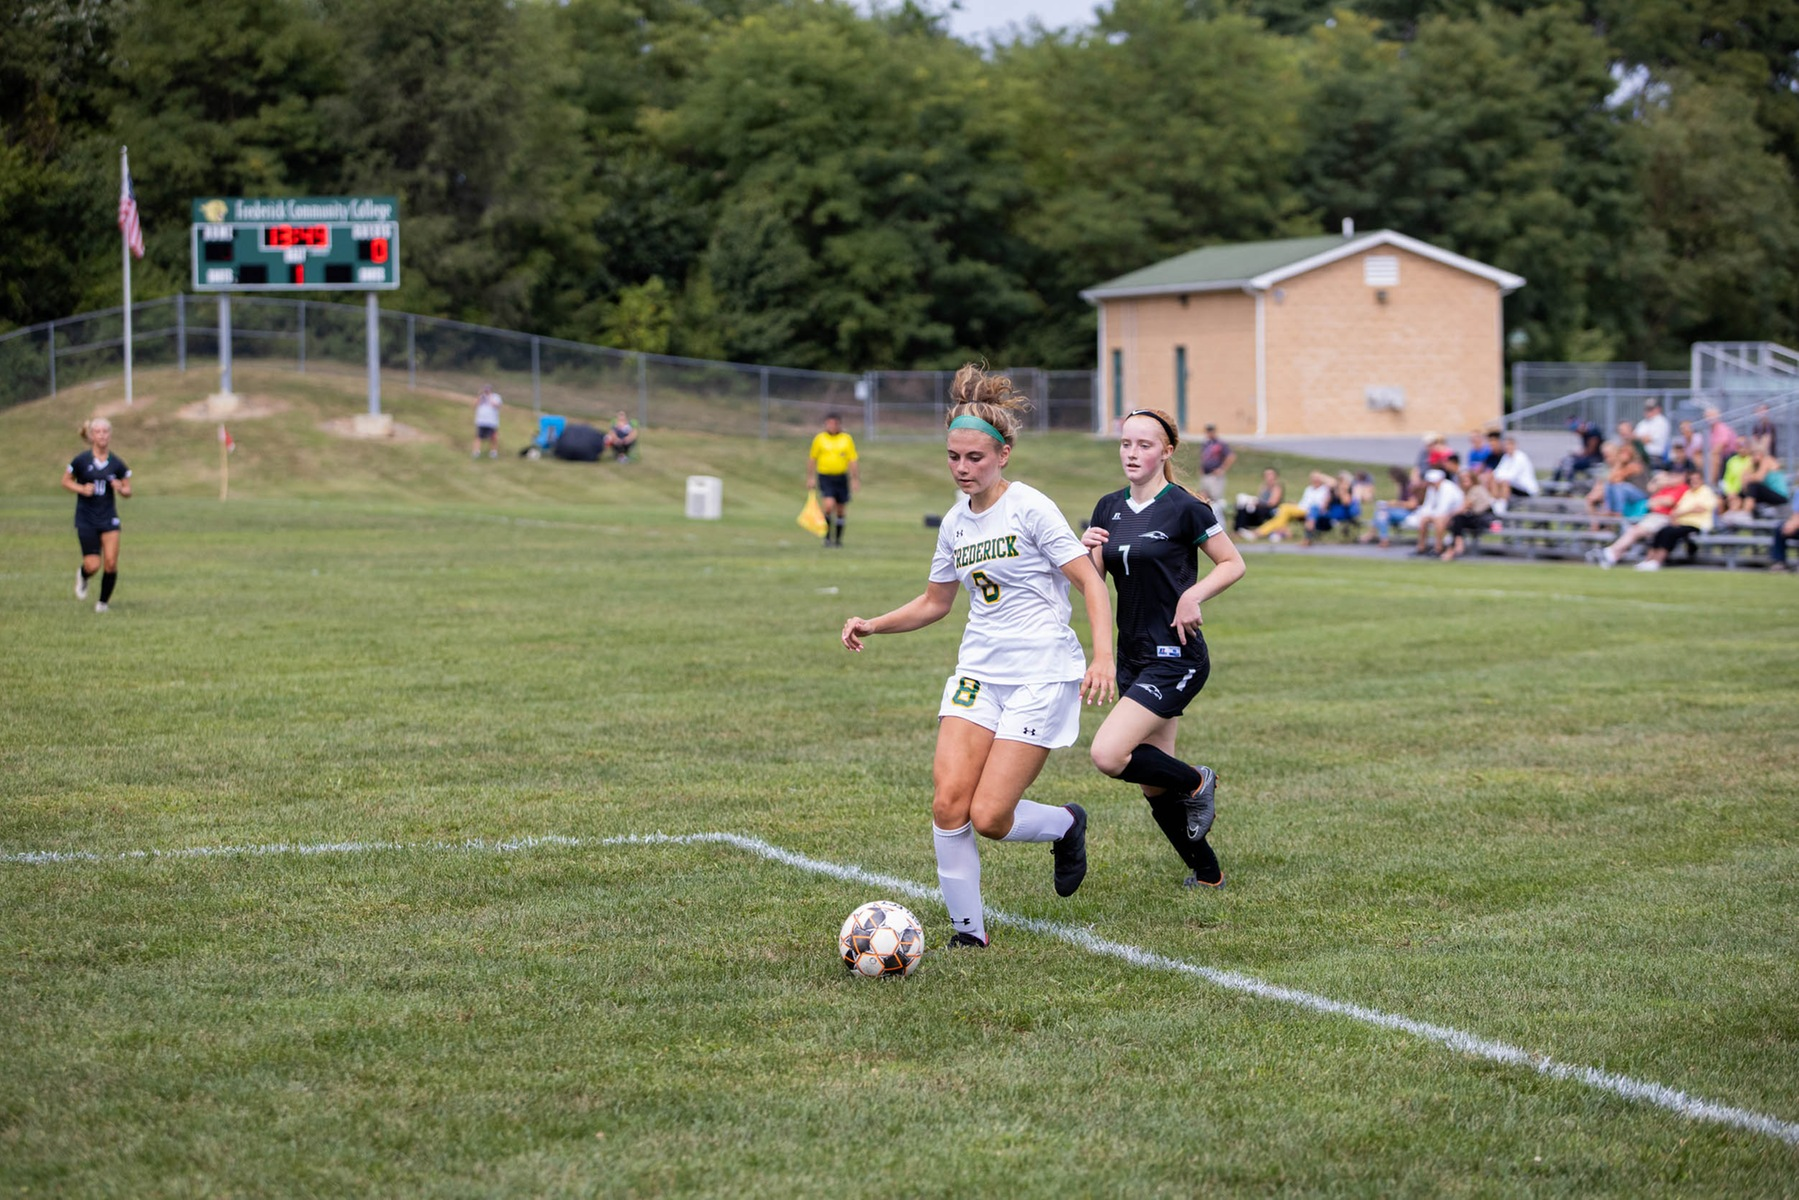 Women's Soccer Closes Out Regular Season With Win Over Catamounts